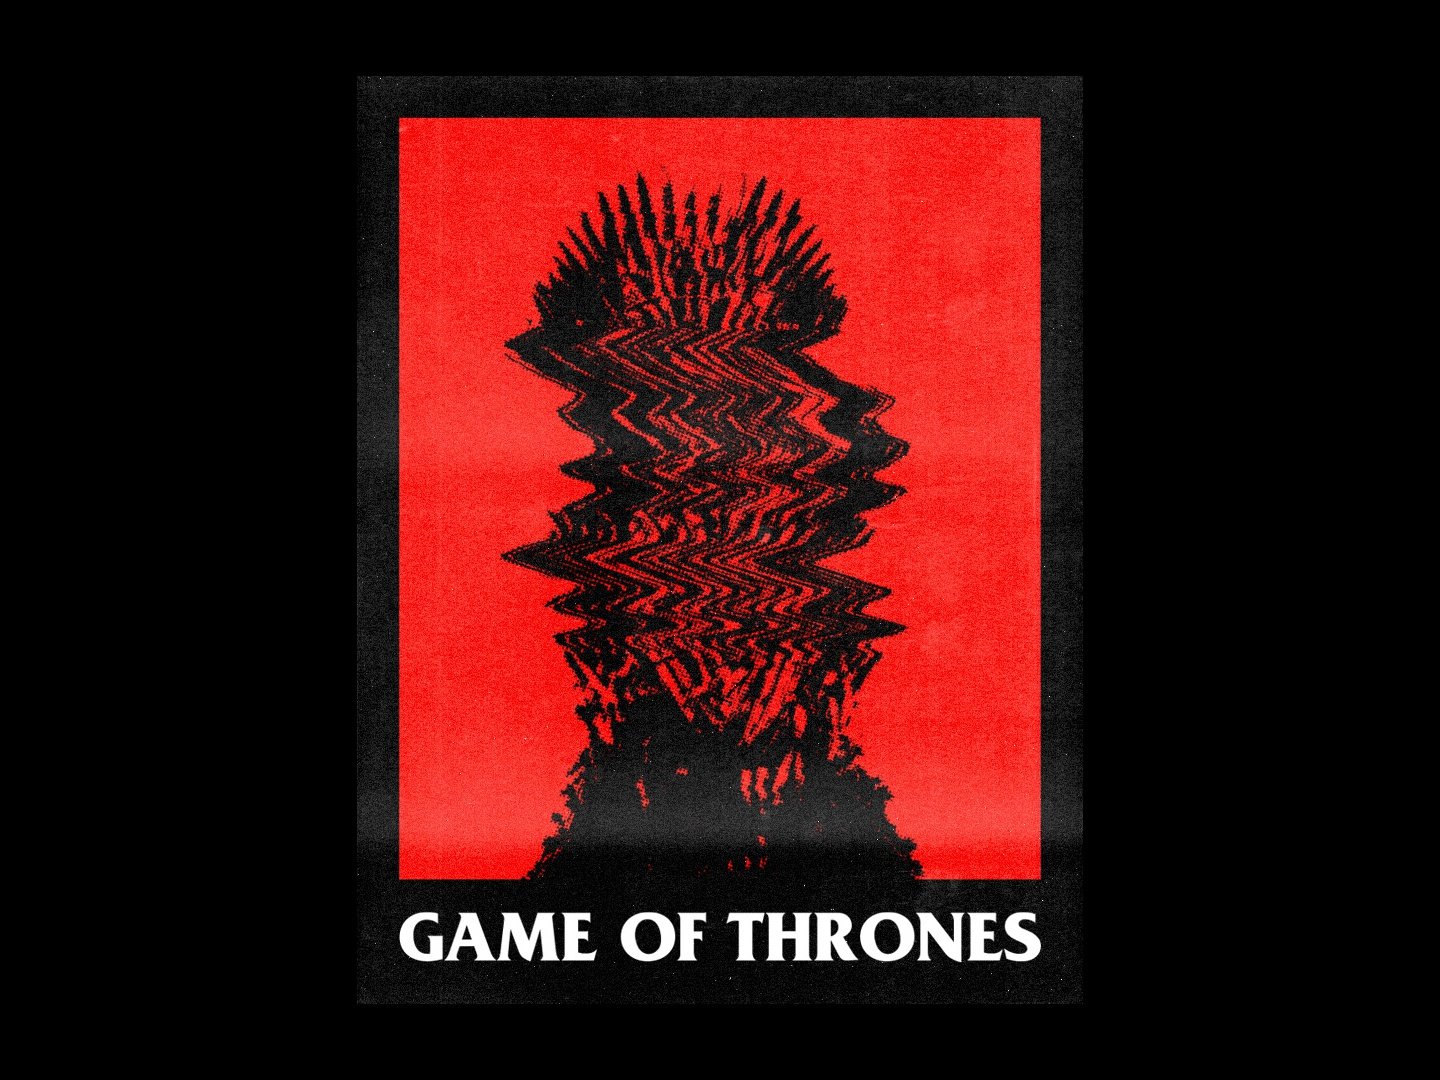 Game Of Thrones - Poster Design throne grunge 2019 trend typography type minimal design graphicdesign graphic design poster collection poster challenge poster a day poster art poster design poster red and black final season got game of thrones game of throne